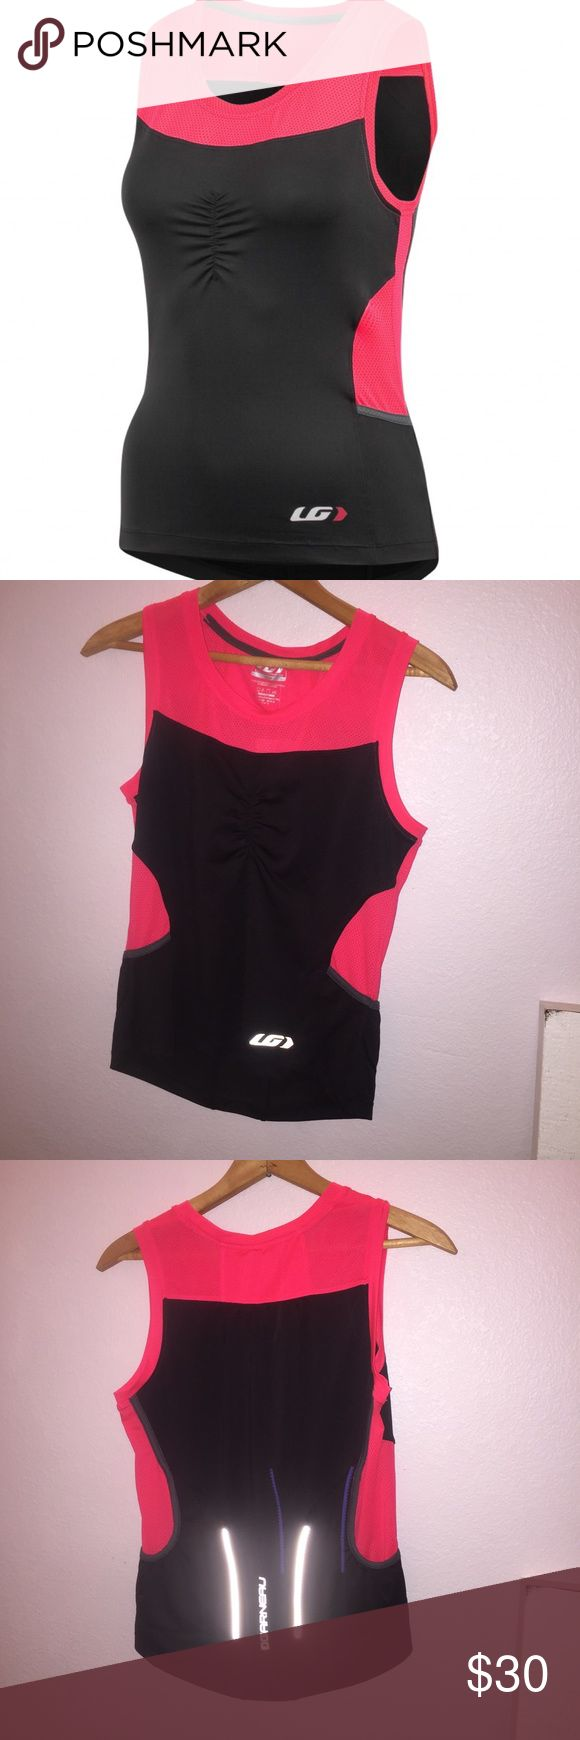 NWT Louis Garneau Tank NWT Louis Garneau Tank. Pink and black with reflective stripes on back. 💸DONT FORGET TO BUNDLE AND SAVE💸 Louis Garneau  Tops Tank Tops